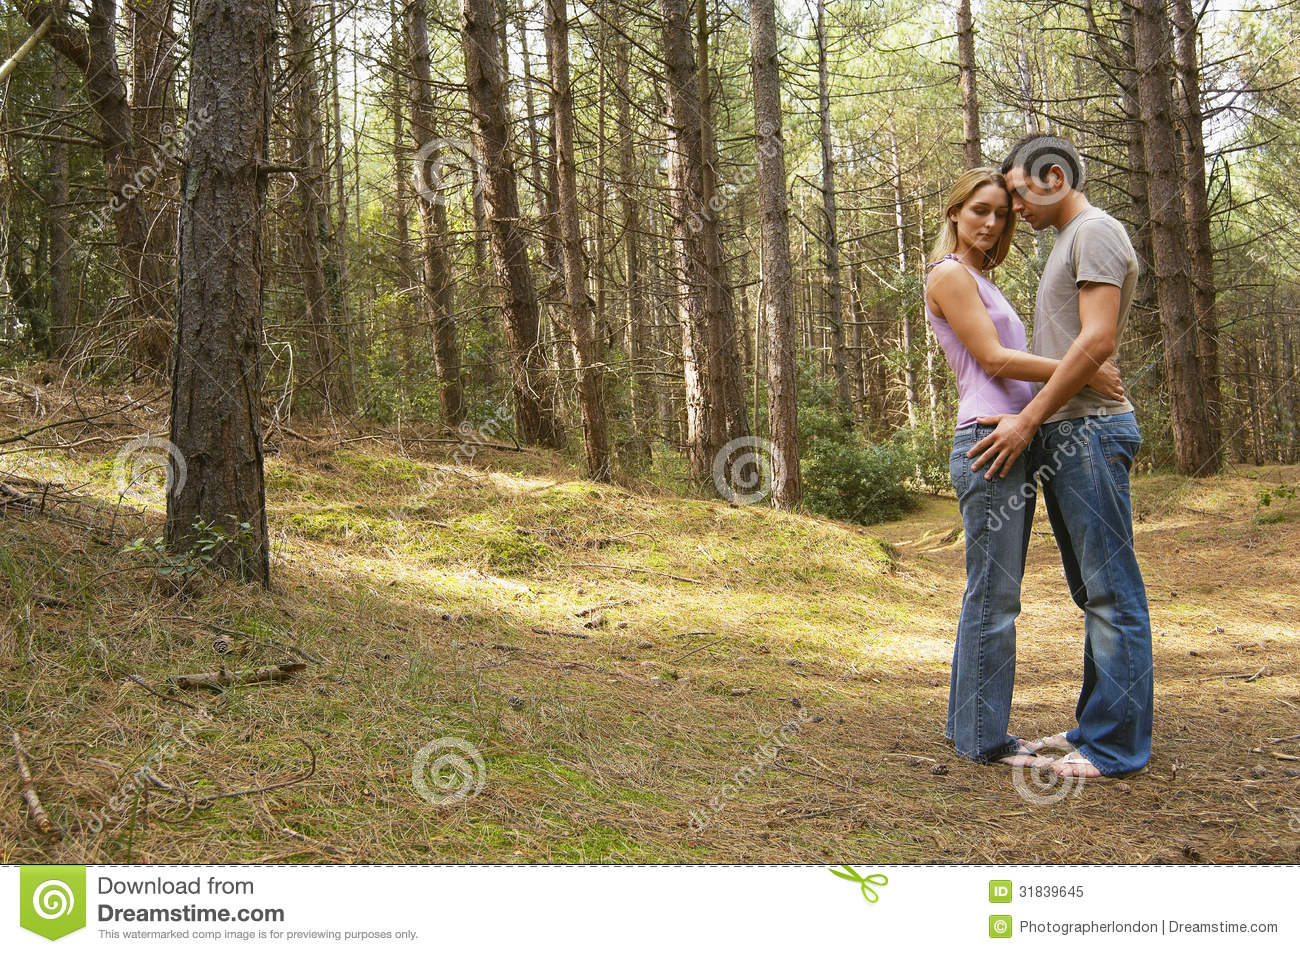 rawest forest newgrounds dating